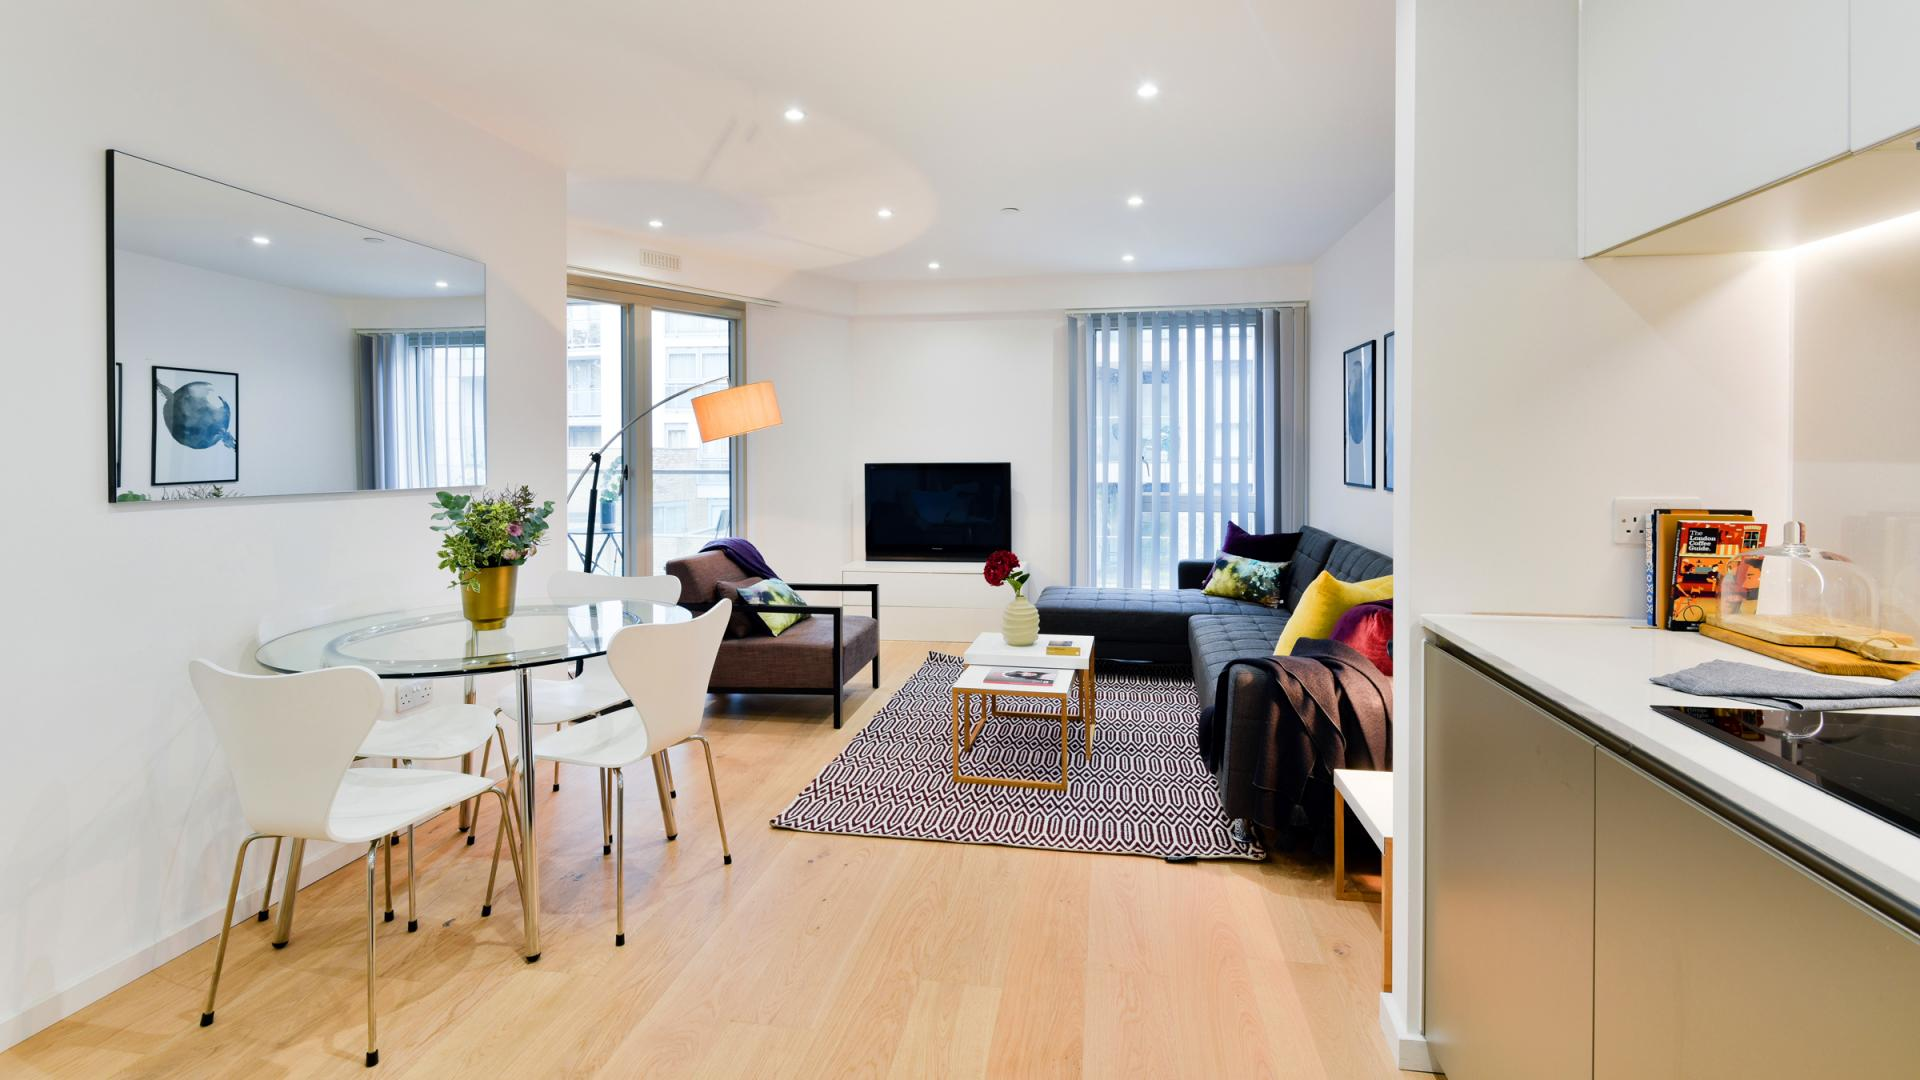 Open-plan kitchen at Clapham South 1 Apartment